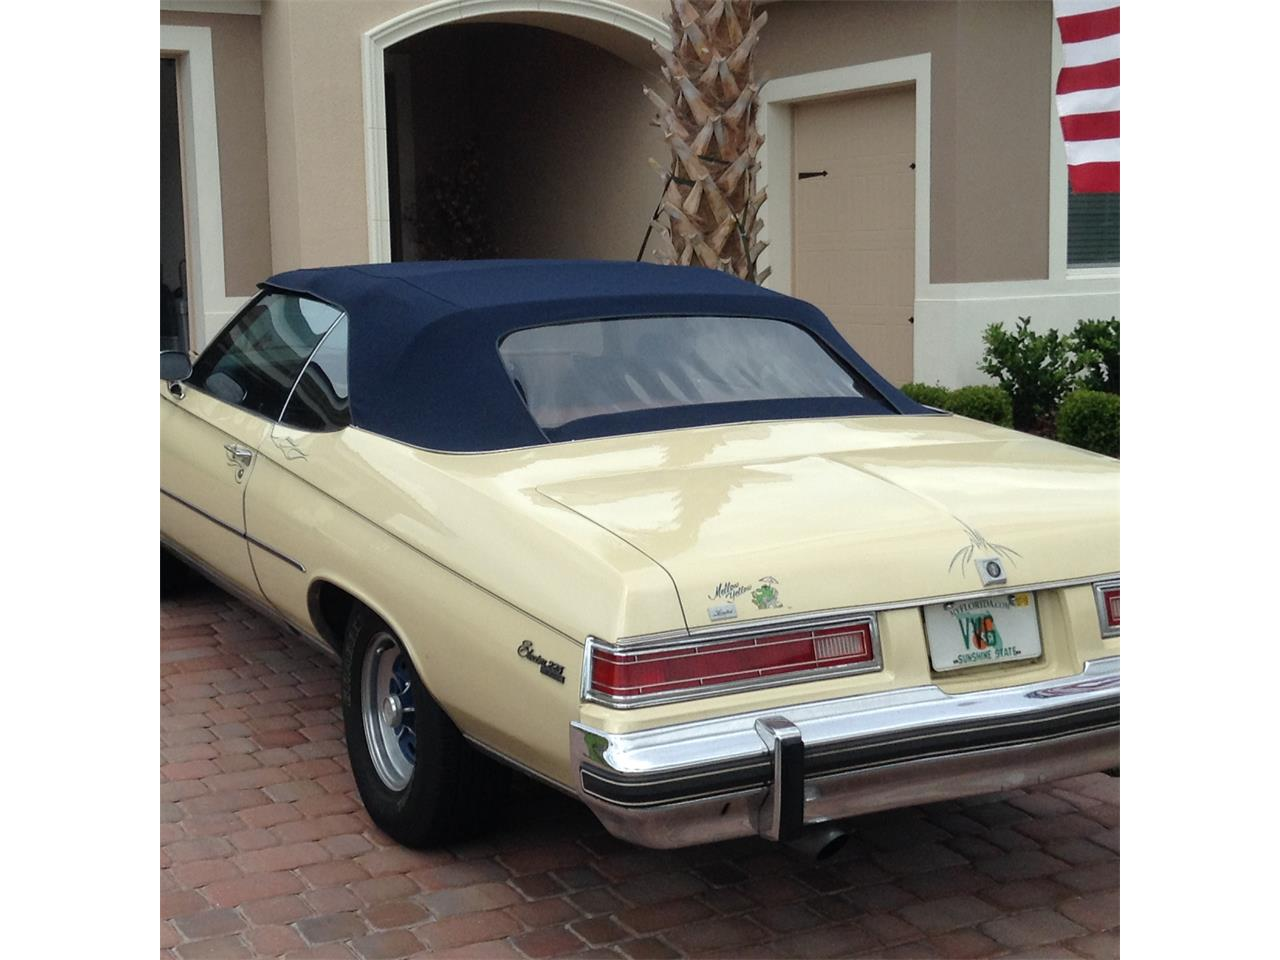 Large Picture of '75 Electra located in Florida - $30,000.00 Offered by a Private Seller - LEM0